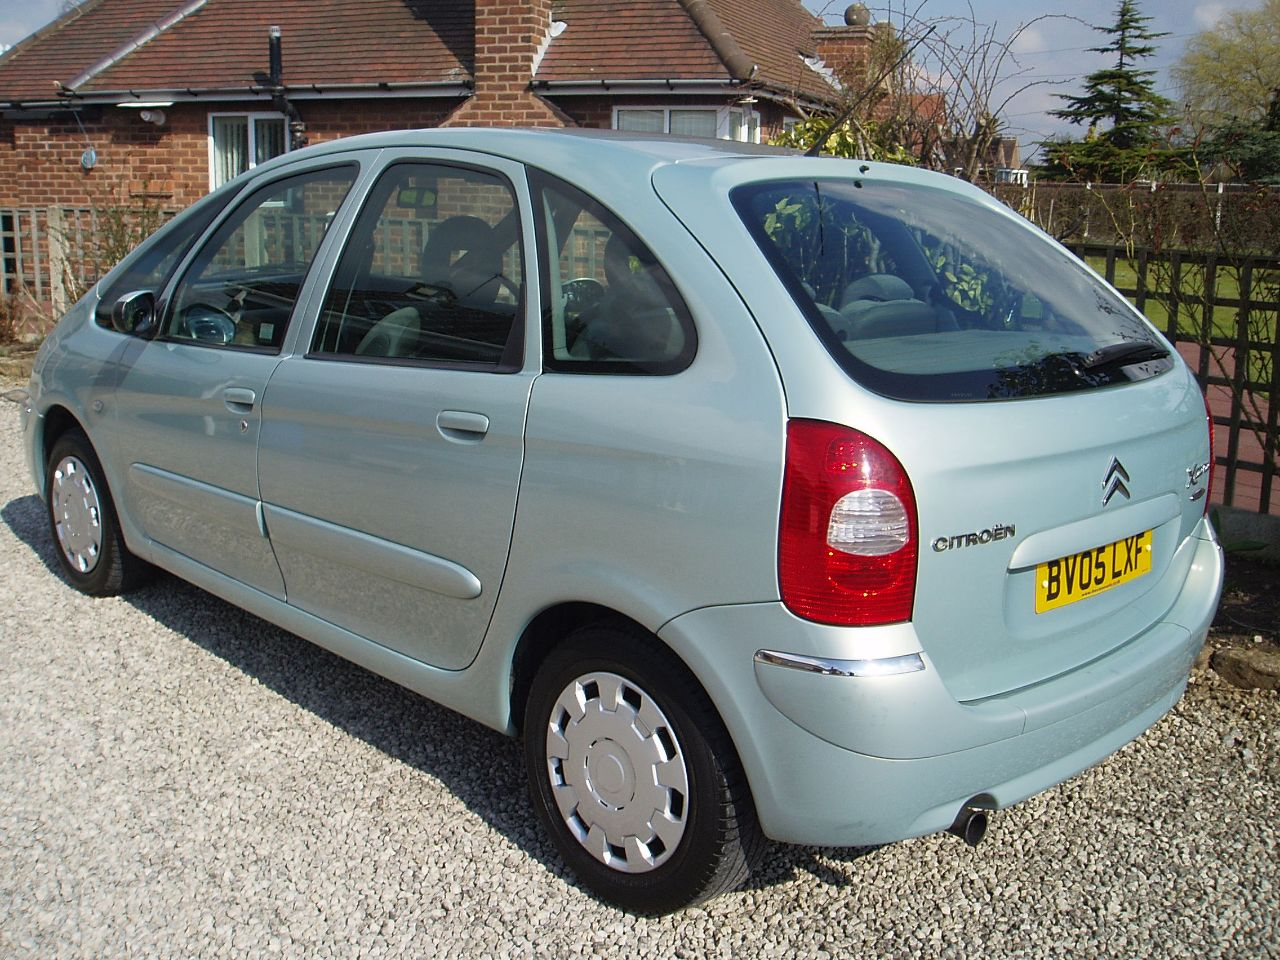 second hand citroen xsara picasso 2 0 hdi desire 2 5dr for sale in worksop nottinghamshire. Black Bedroom Furniture Sets. Home Design Ideas